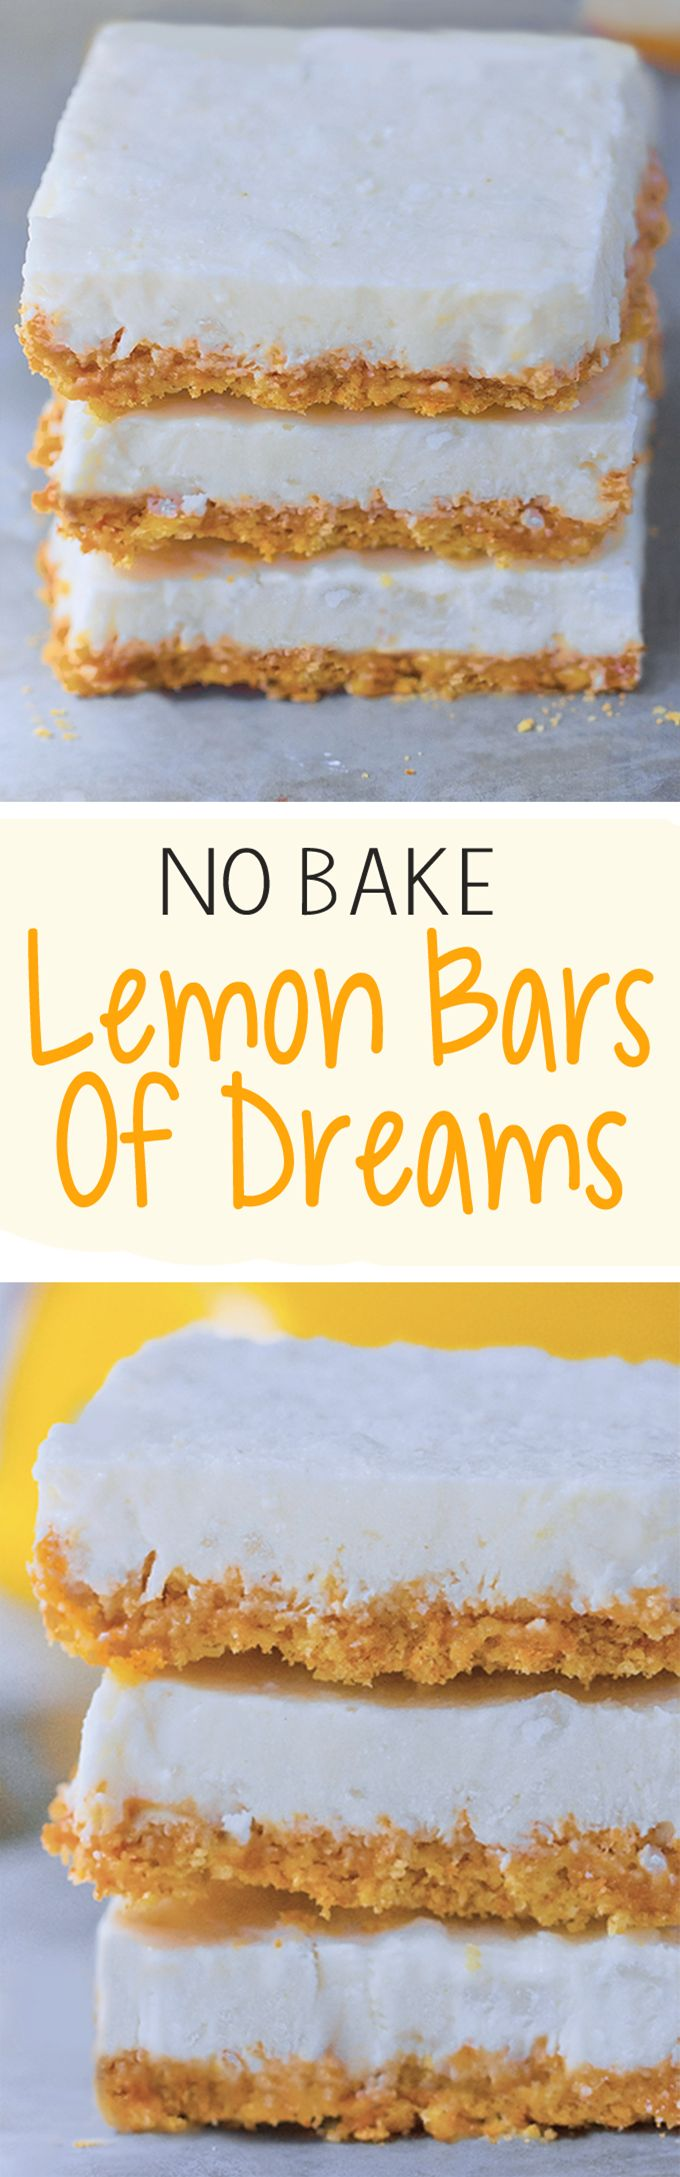 HEALTHY LEMON BARS - Ingredients: 1 tbsp lemon juice, 2 tbsp pure maple syrup, 1 tsp lemon zest, 1/2 cup… Full recipe>> @choccoveredkt http://chocolatecoveredkatie.com